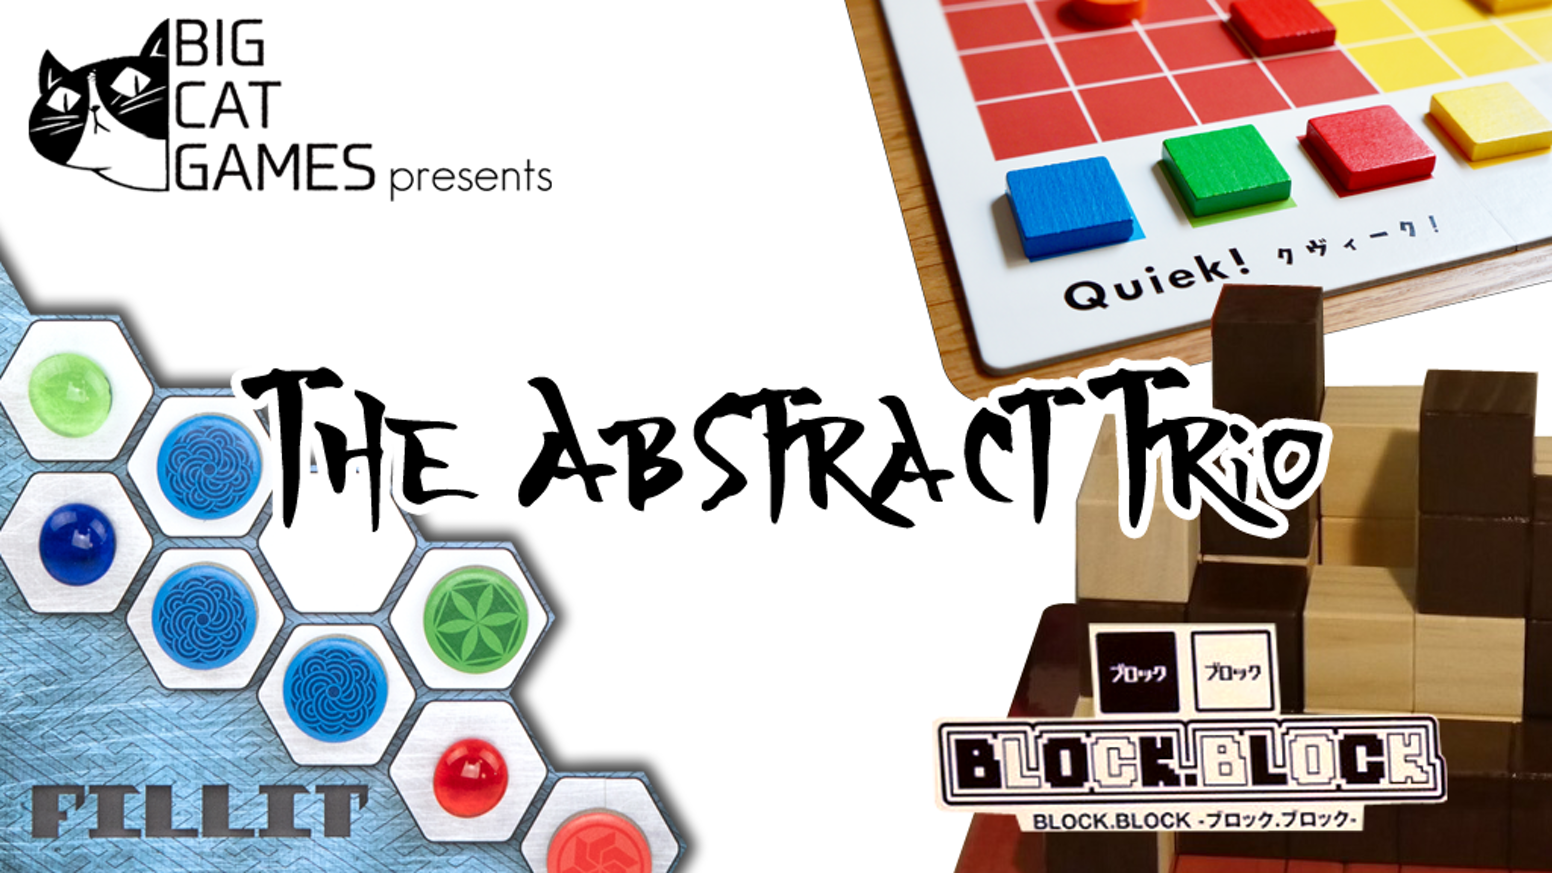 Three uniquely fun abstract games by three Japanese indie designers!